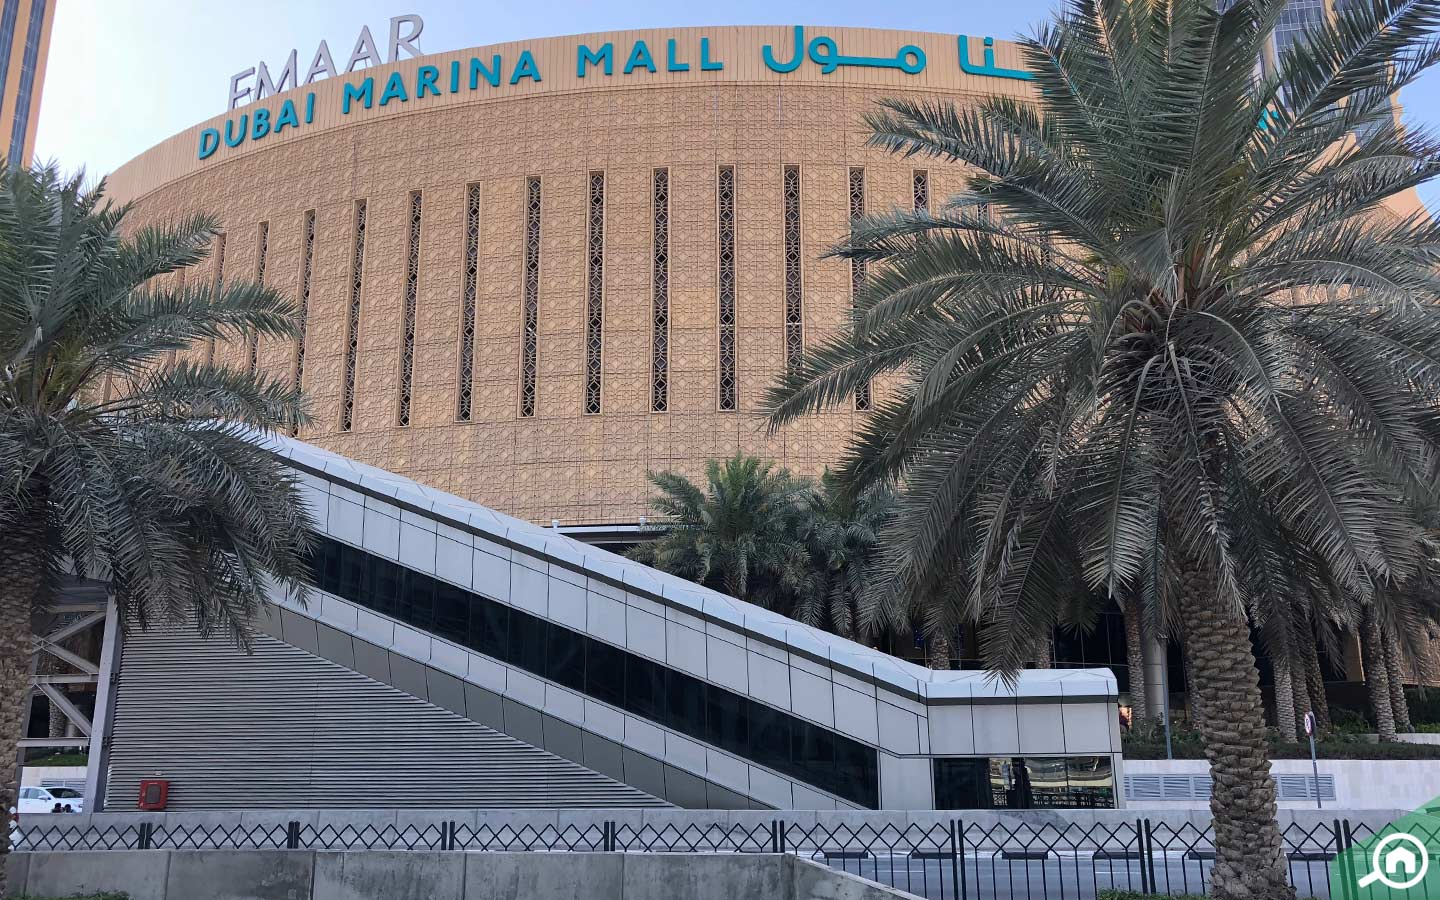 popular mall in Dubai